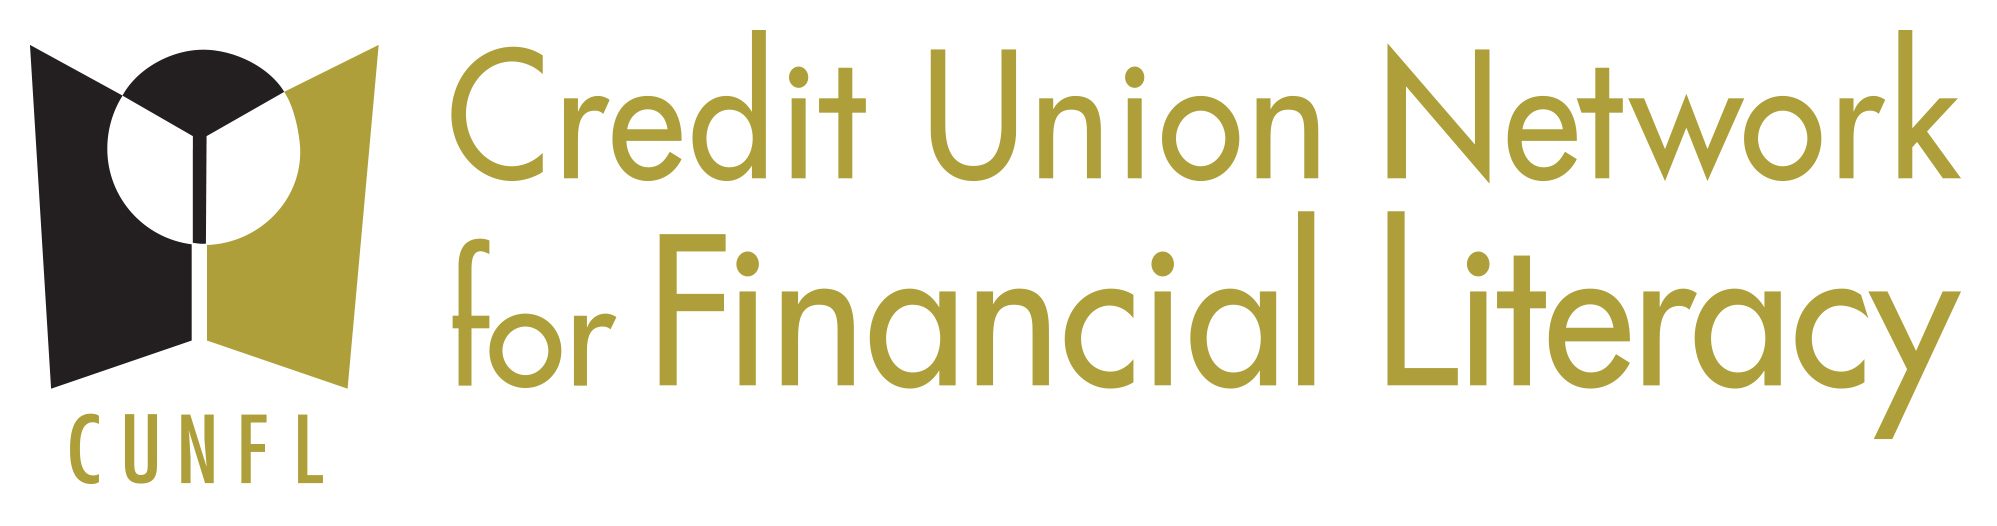 Credit Union Network for Financial Literacy